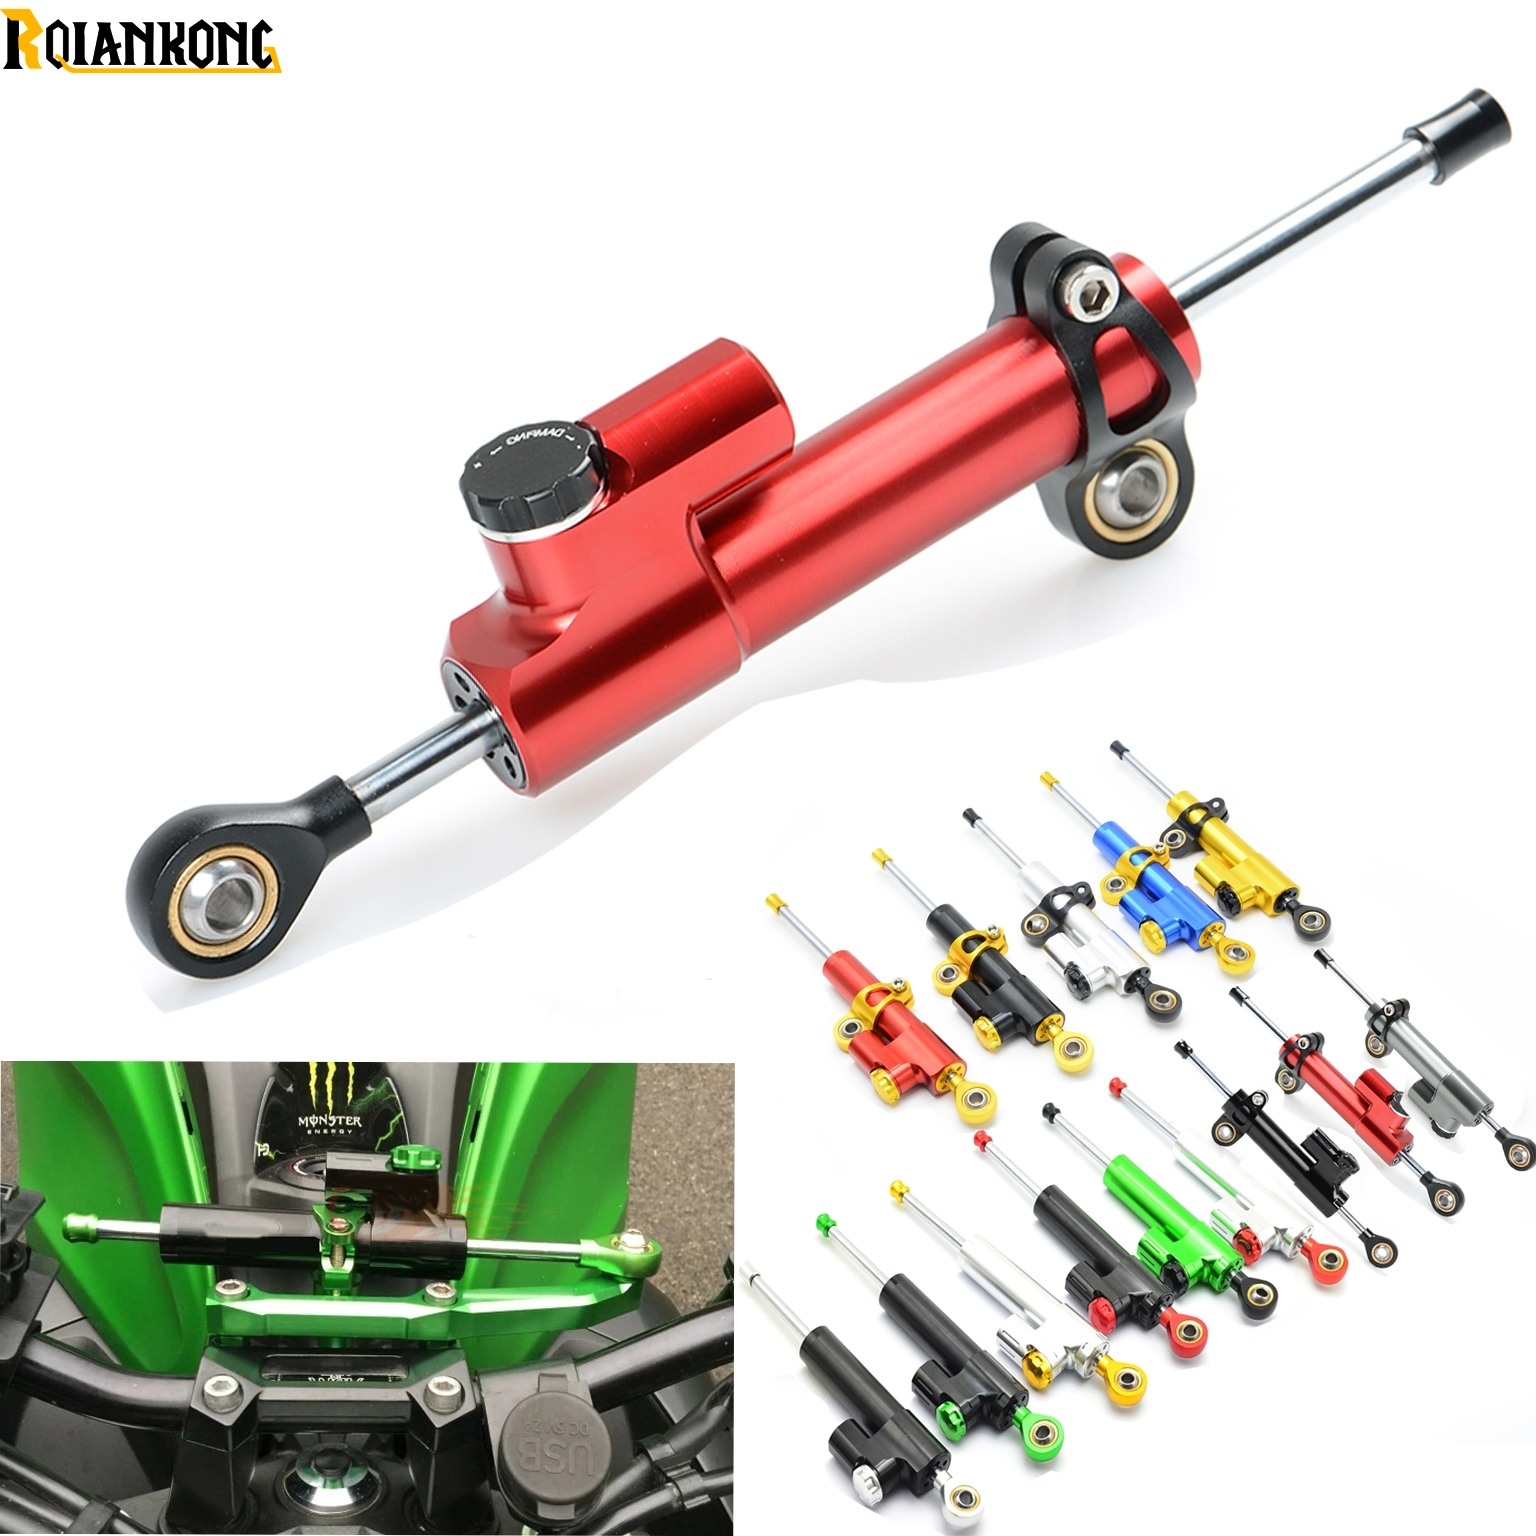 CNC Aluminum Motorcycle Steering Damper Stabilizer Linear Safe Control for MOTO GUZZI 1200 SPORT AUDACE BREVA 1100 750 for moto guzzi breva 850 1100 1200 griso breva 1100 norge 1200 gt8v motorcycle long and short brake clutch levers cnc shortly